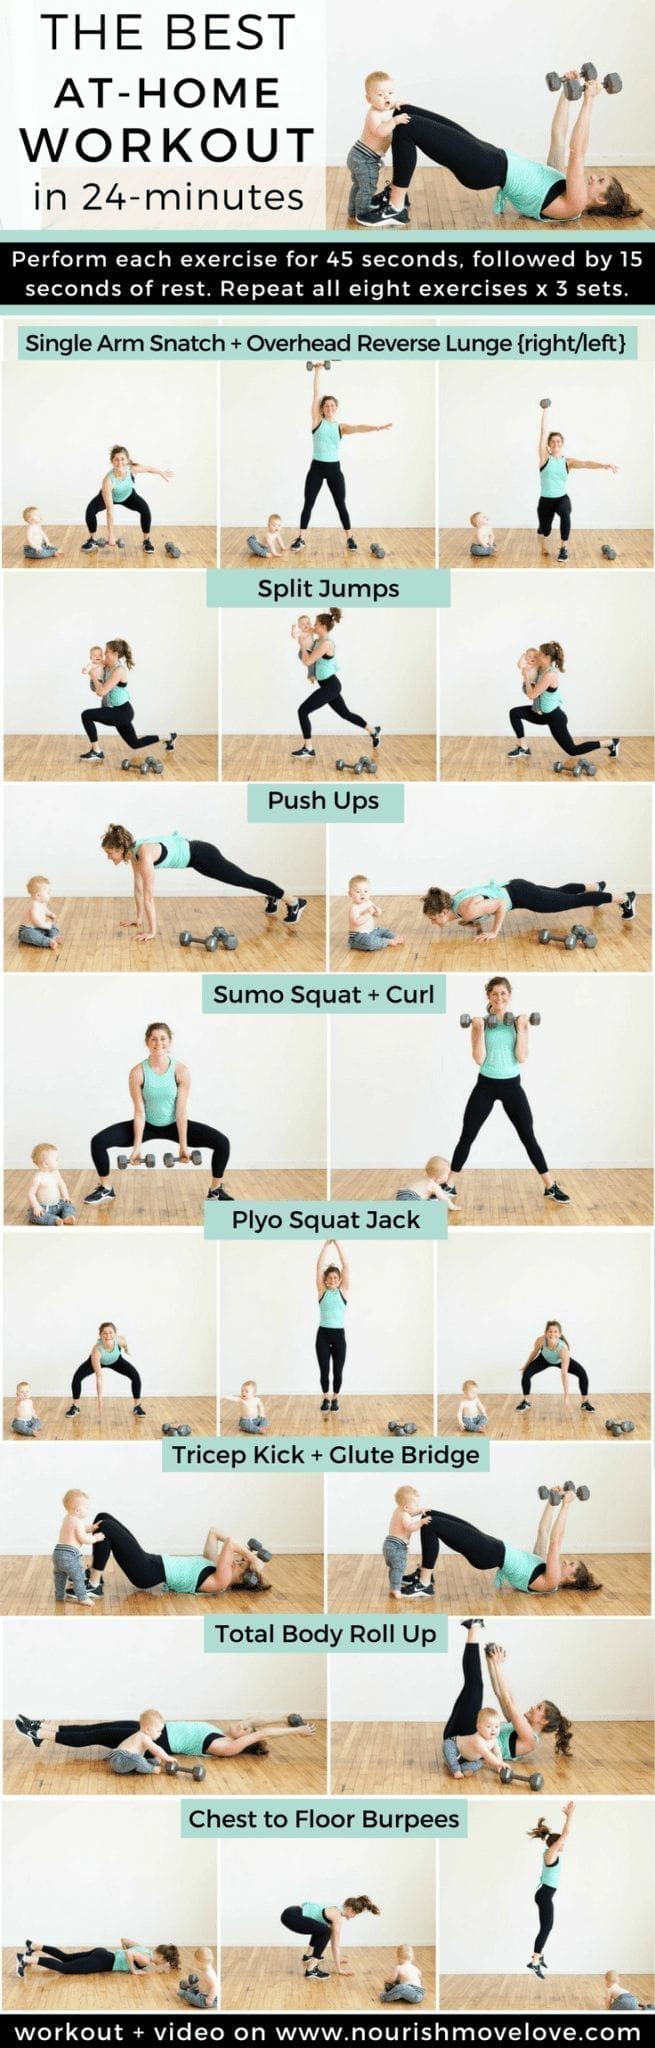 The Best Strenght + HIIT Workout for Women